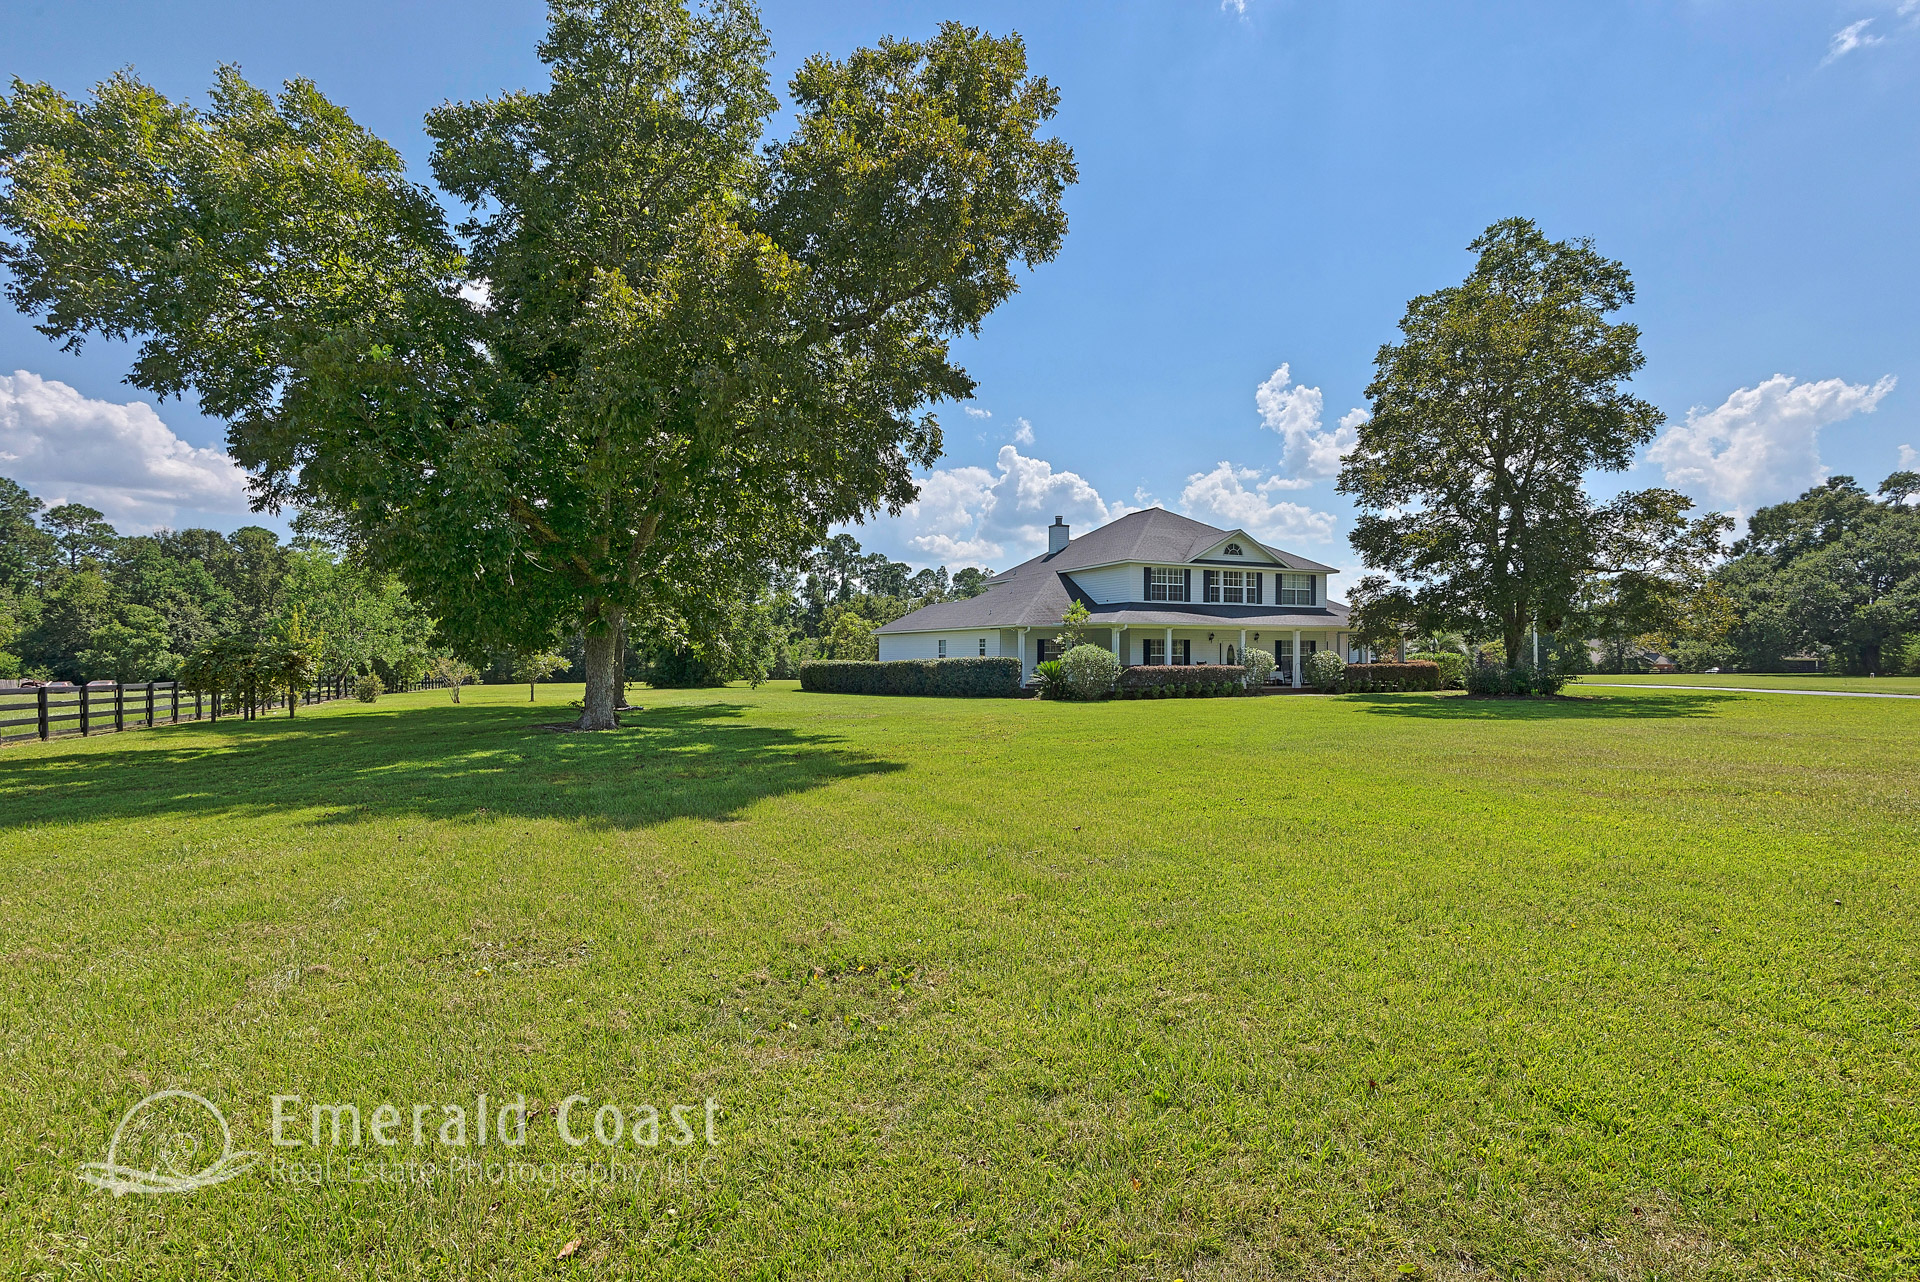 home with large front lawn